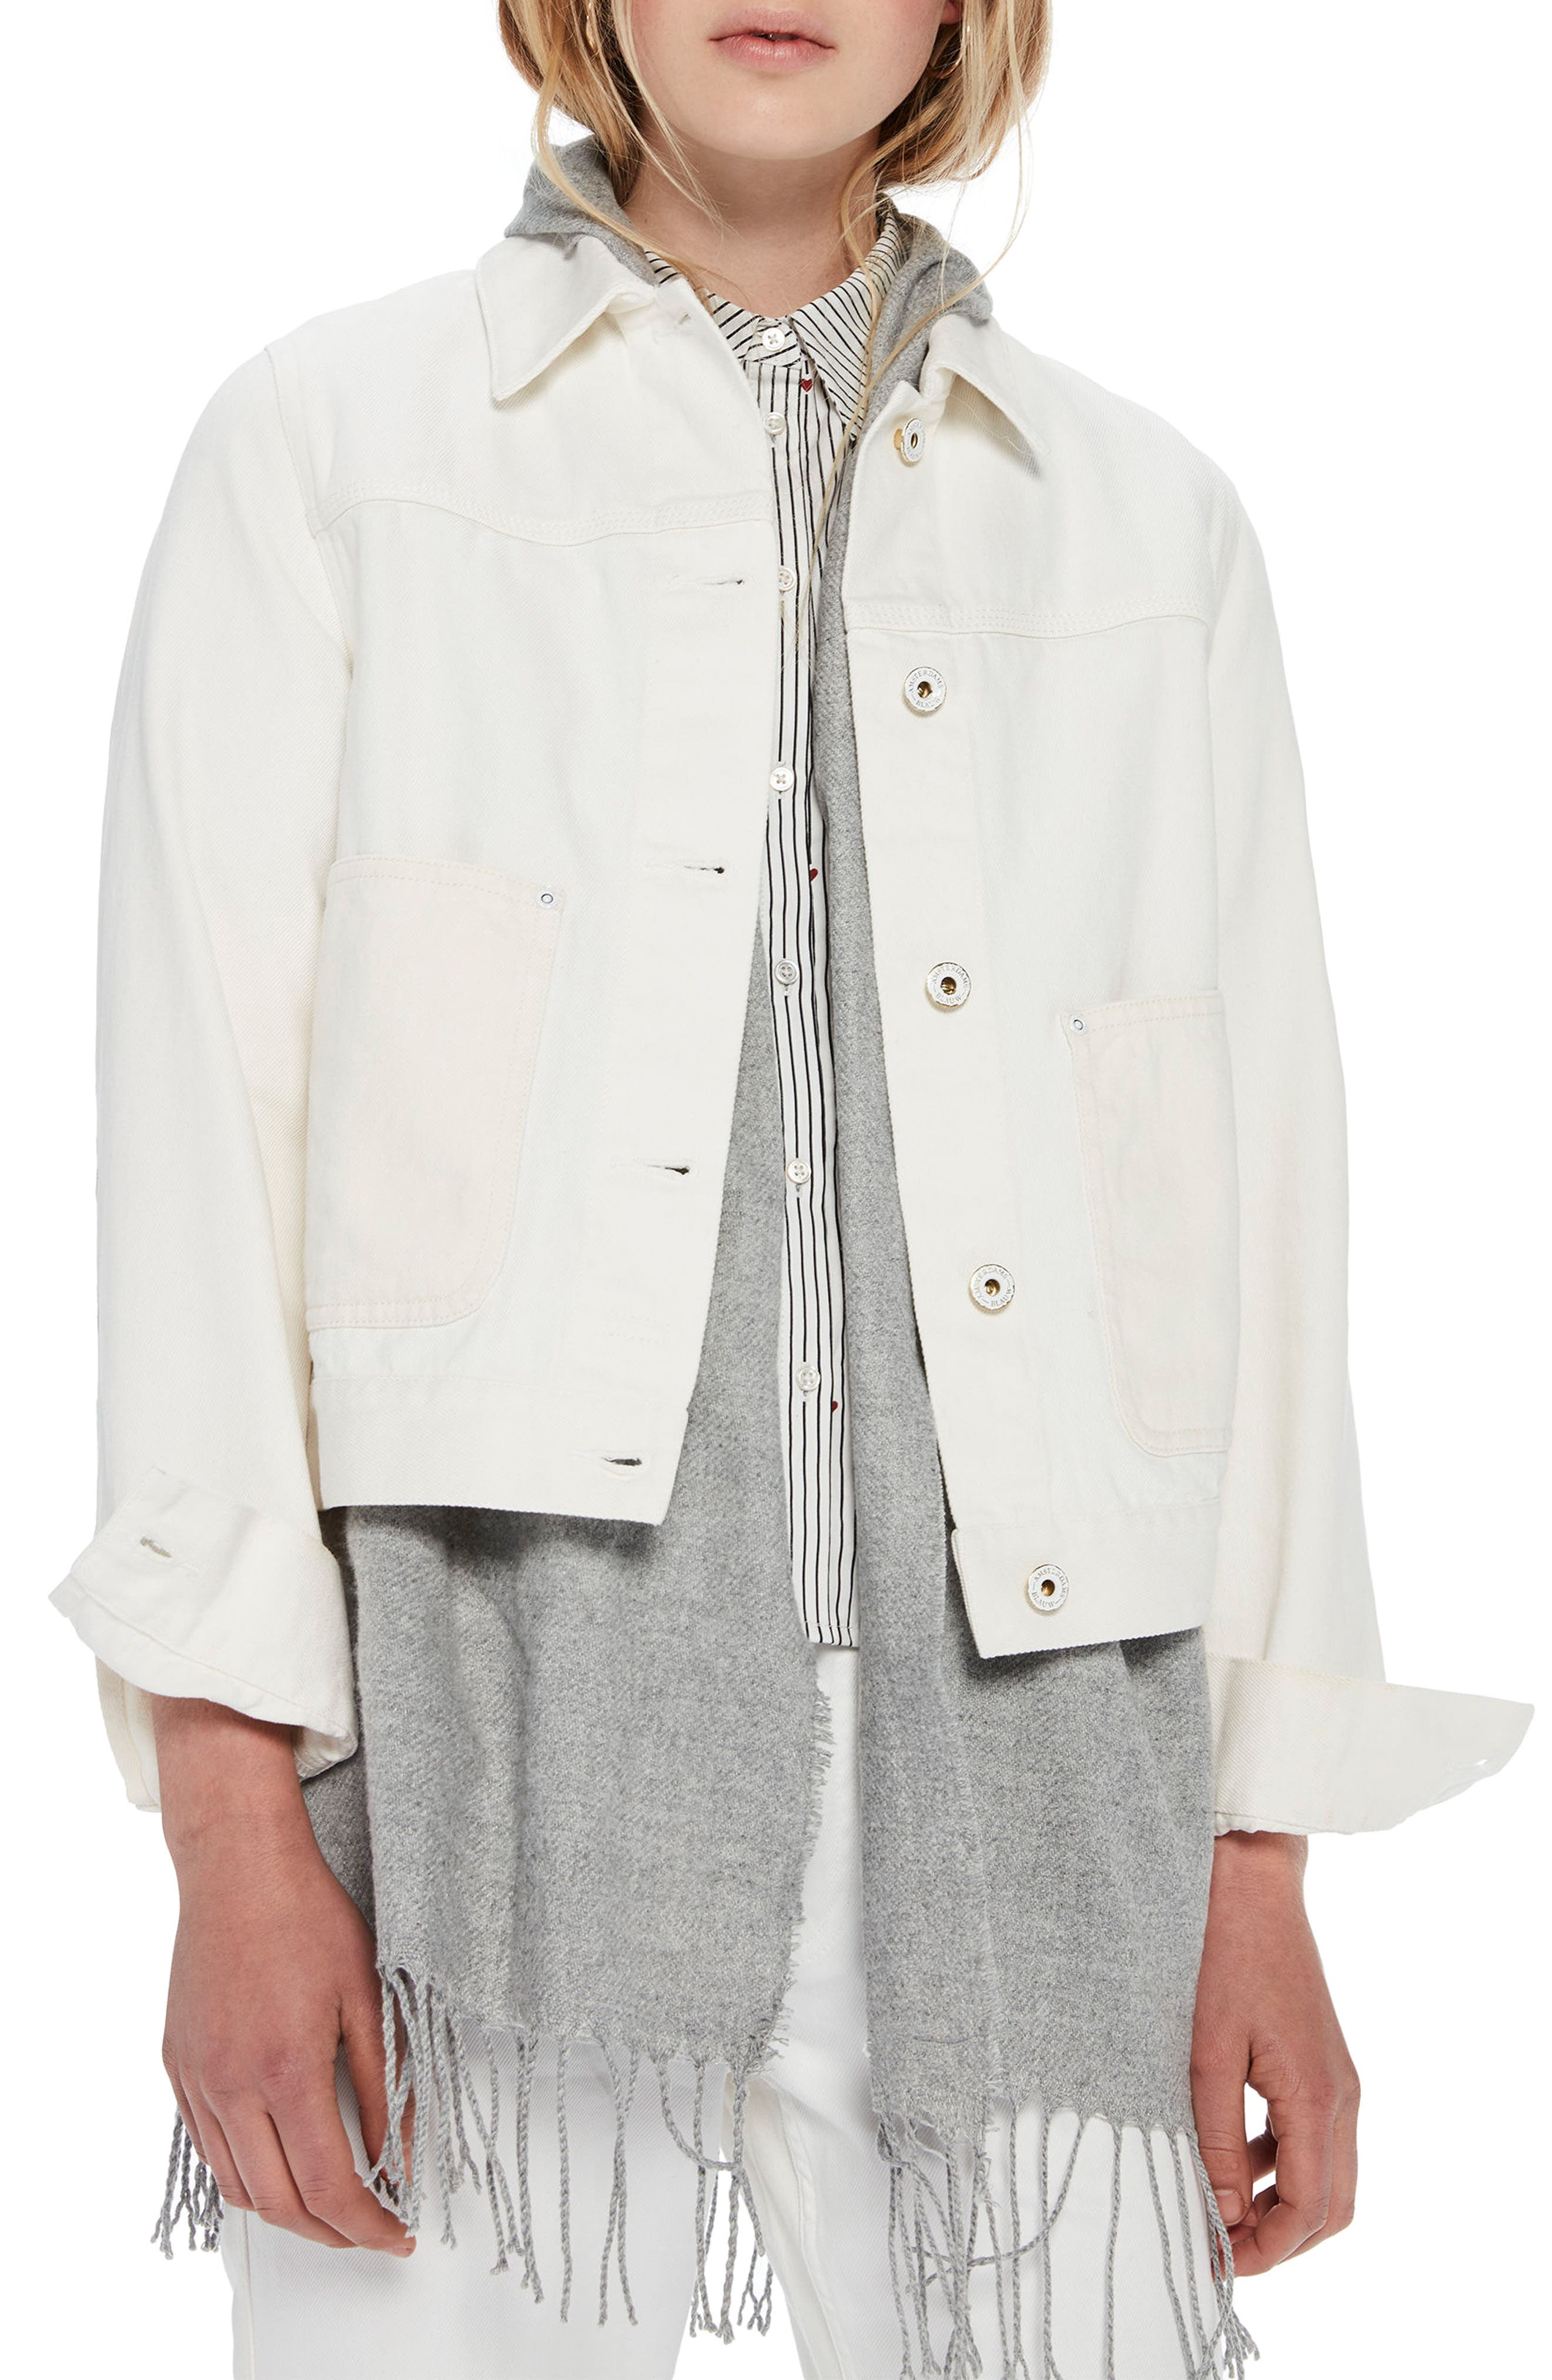 Moon Embroidered Denim Jacket with Scarf,                             Main thumbnail 1, color,                             03 Off White